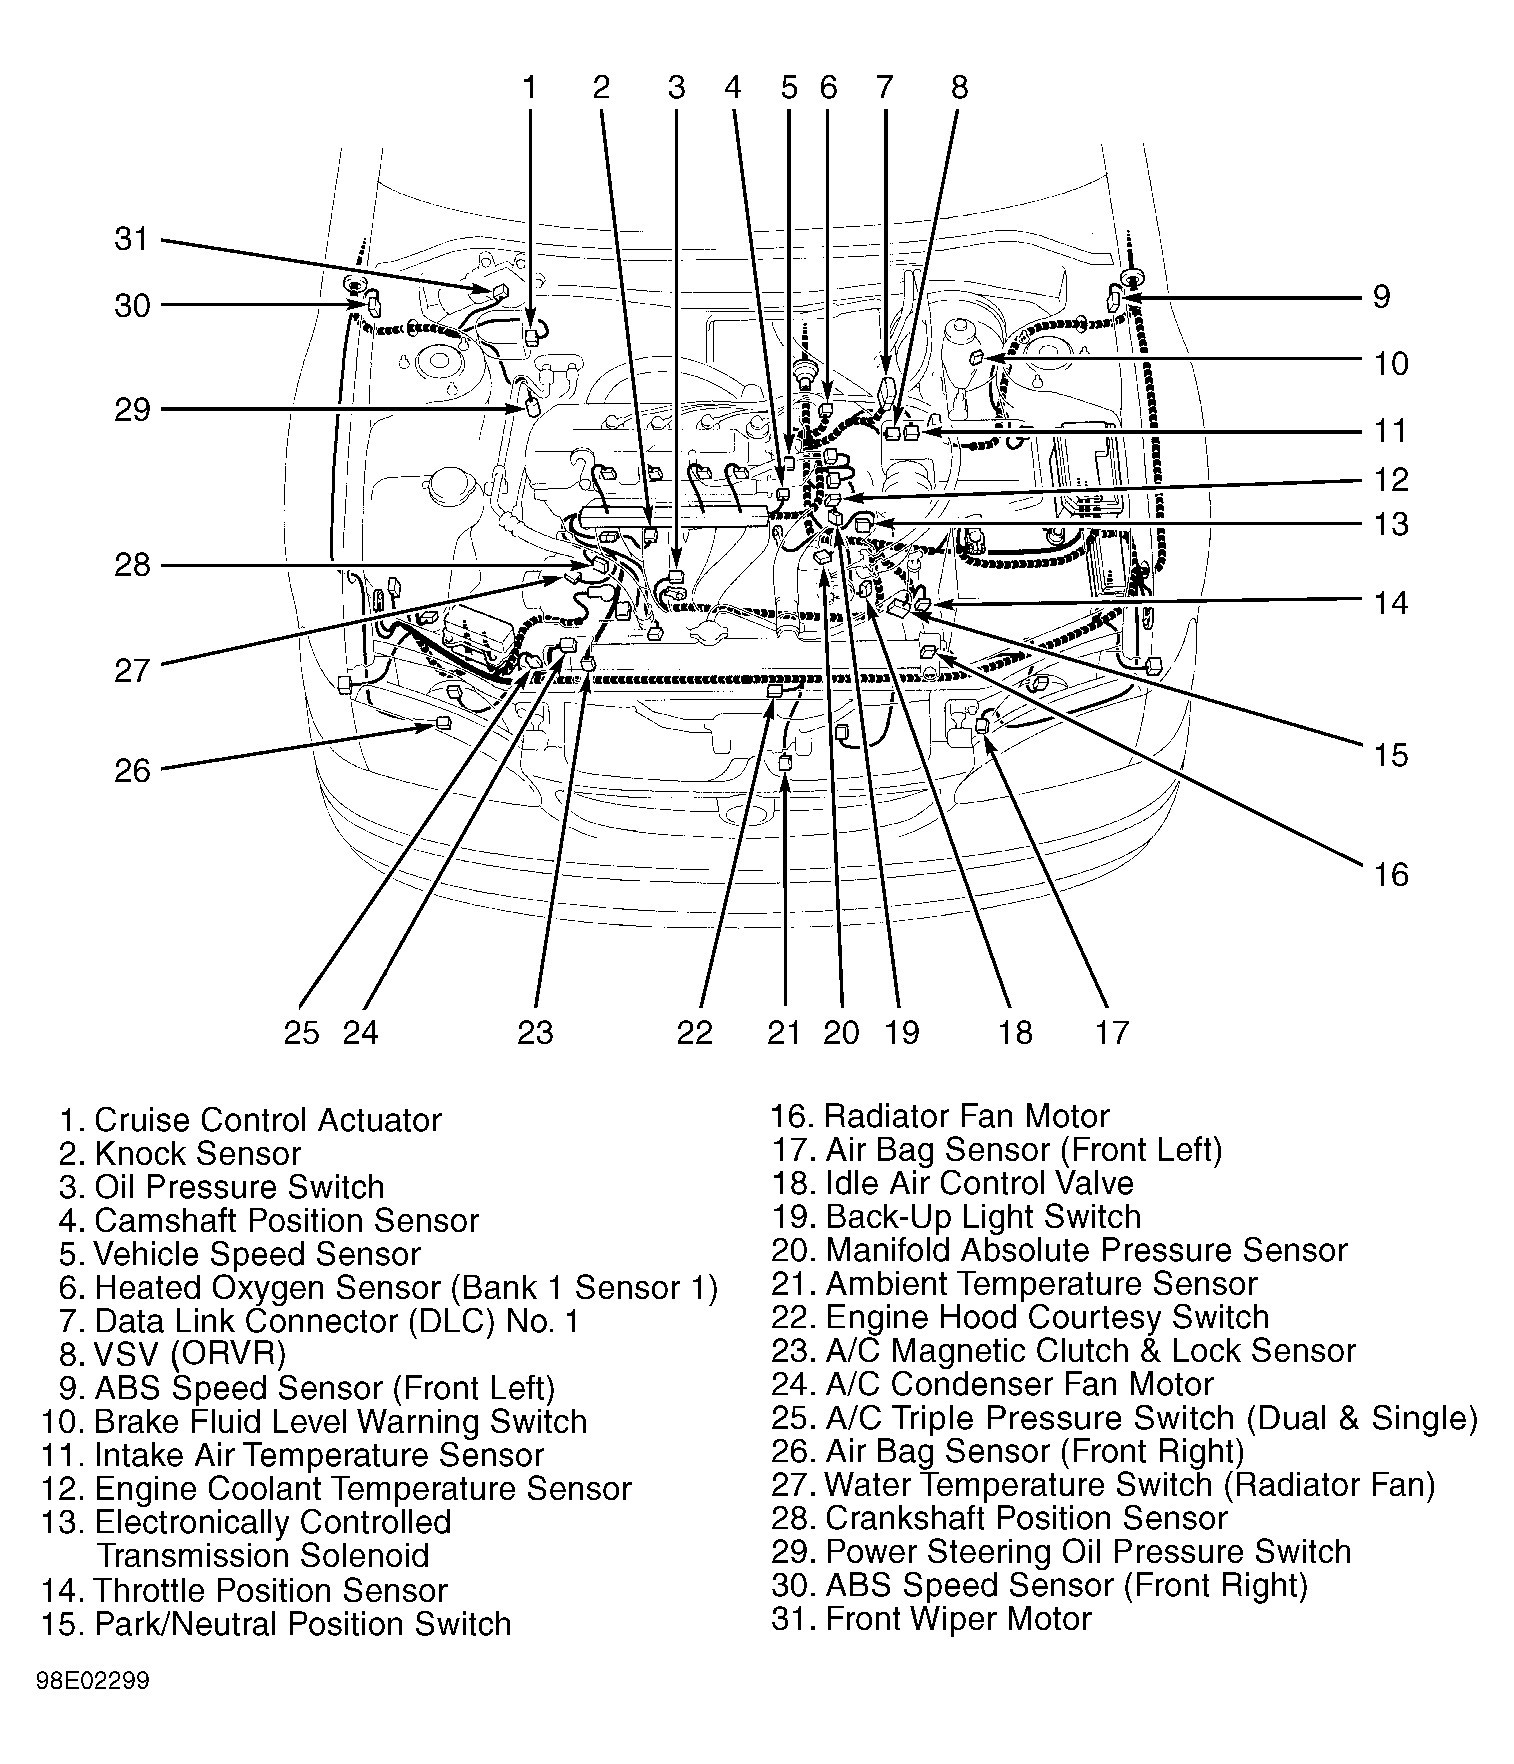 hight resolution of 1997 toyota corolla engine diagram wiring diagram used 1989 toyota corolla engine diagram